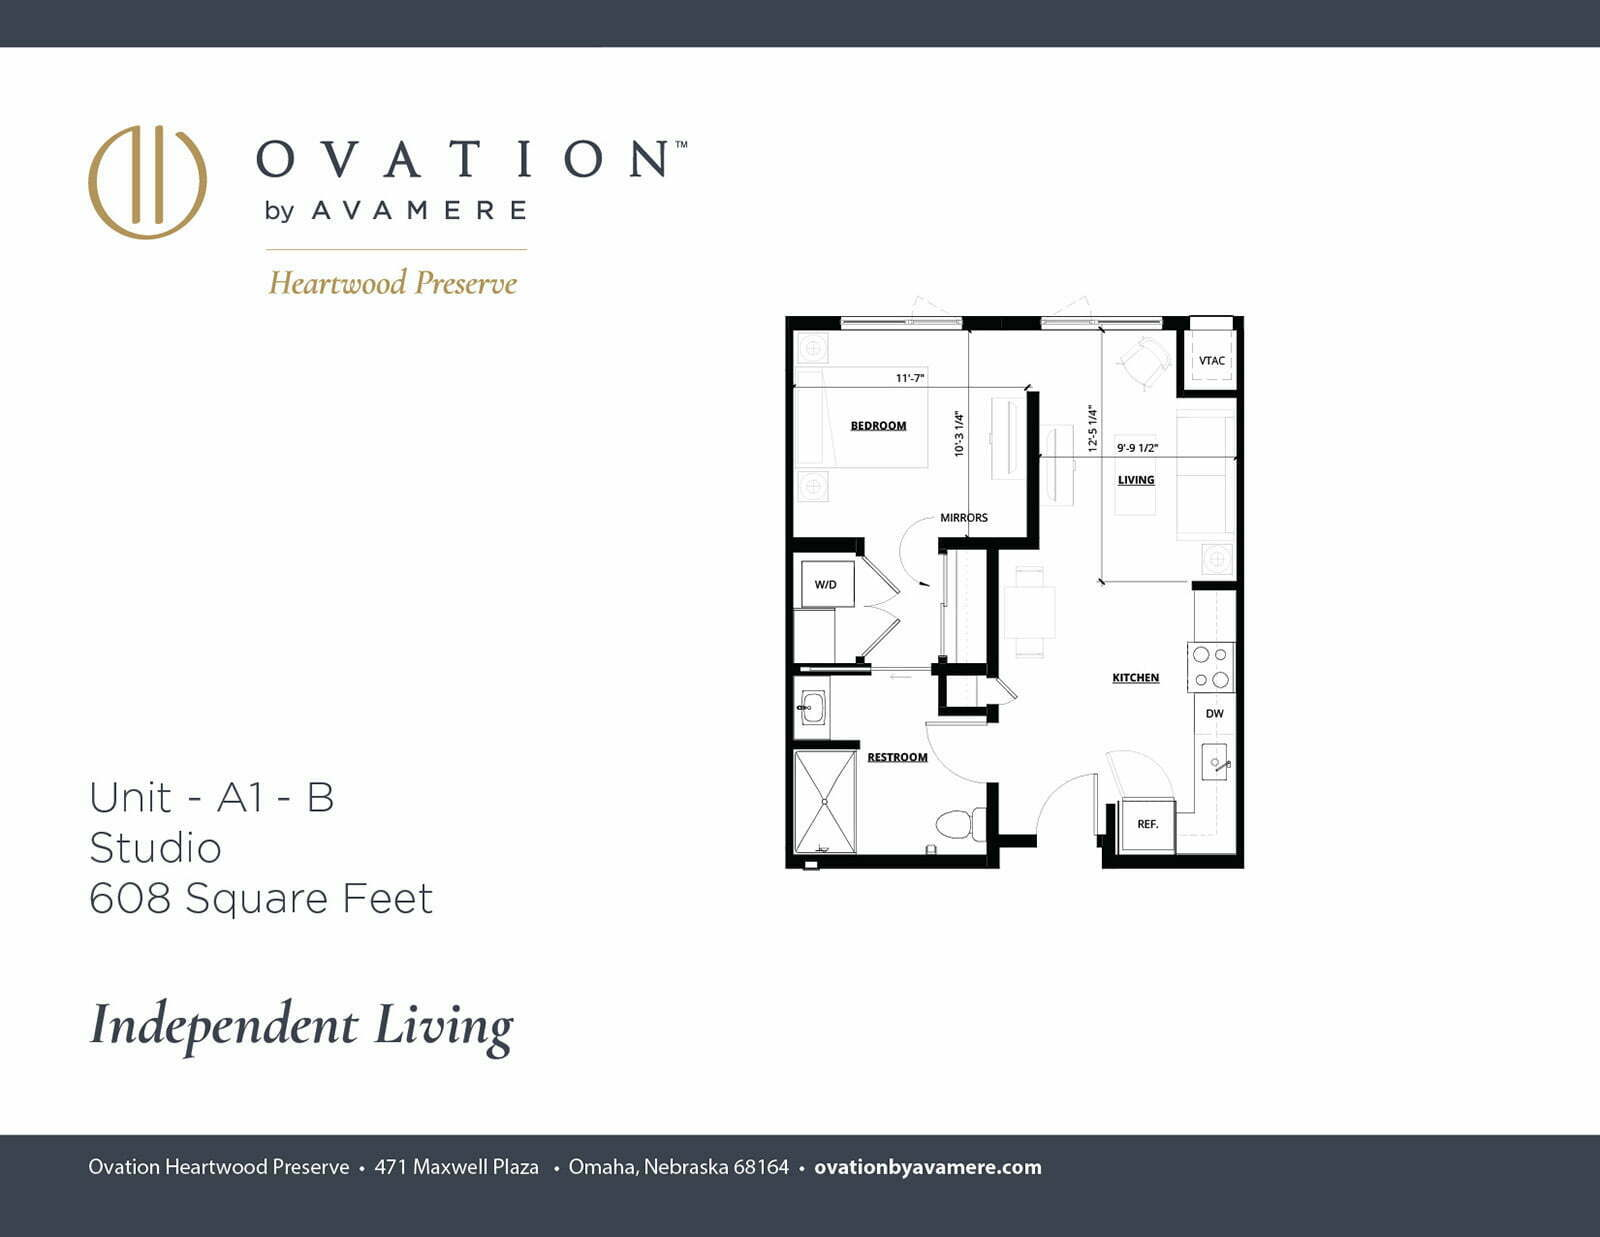 Independent Living | Room A1 - B